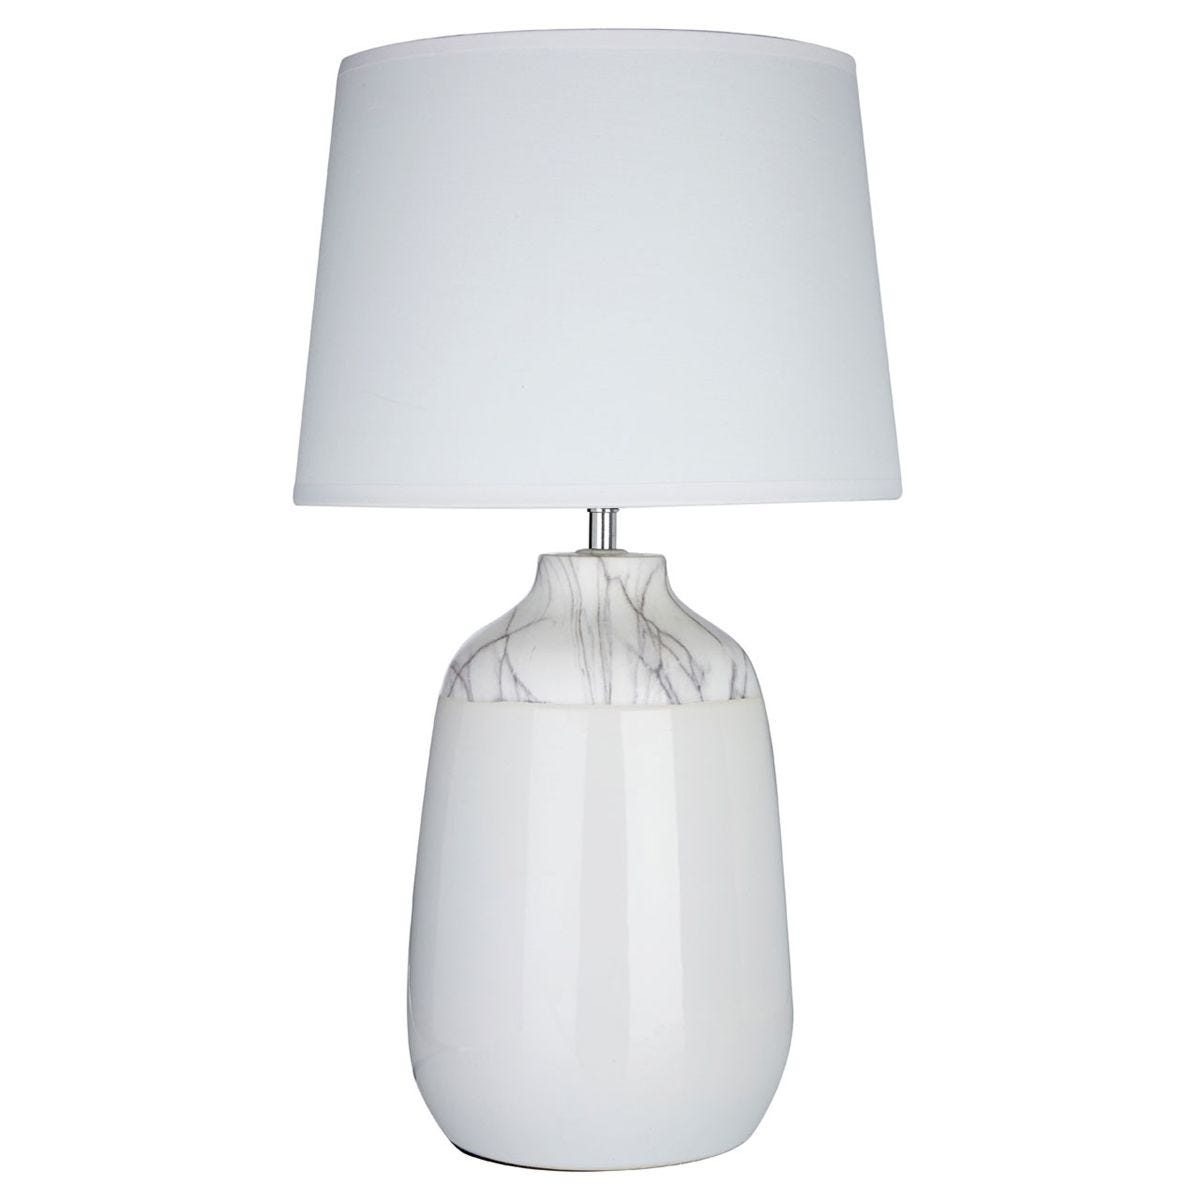 Premier Housewares Wenita Table Lamp in White Ceramic with White Fabric Shade